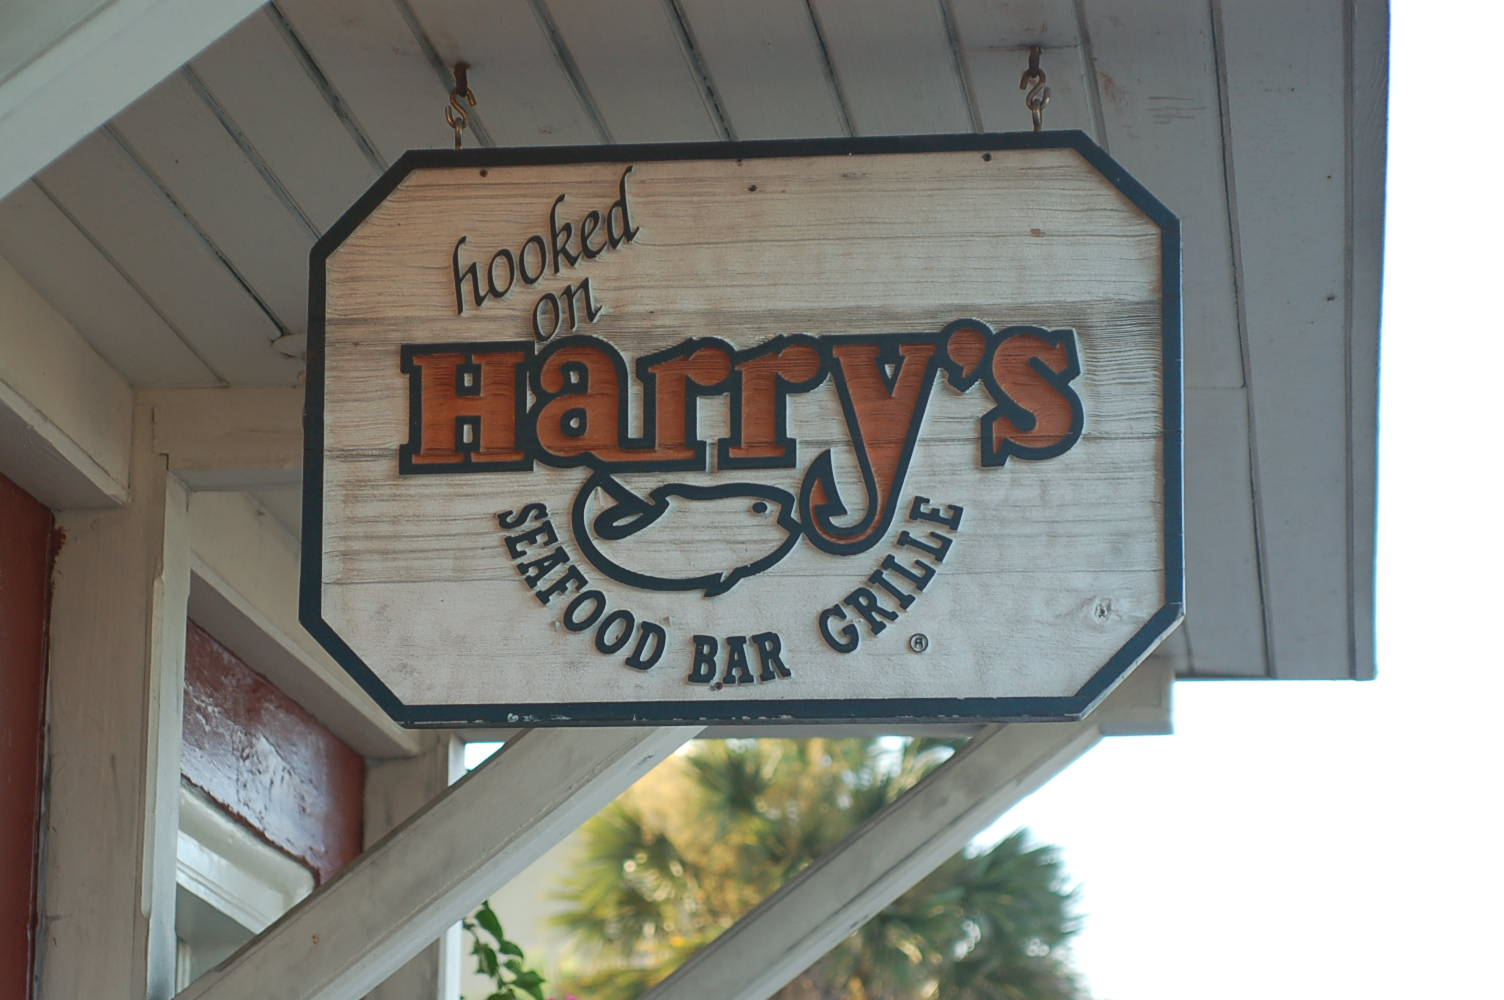 Harry's Seafood, Bar and Grille